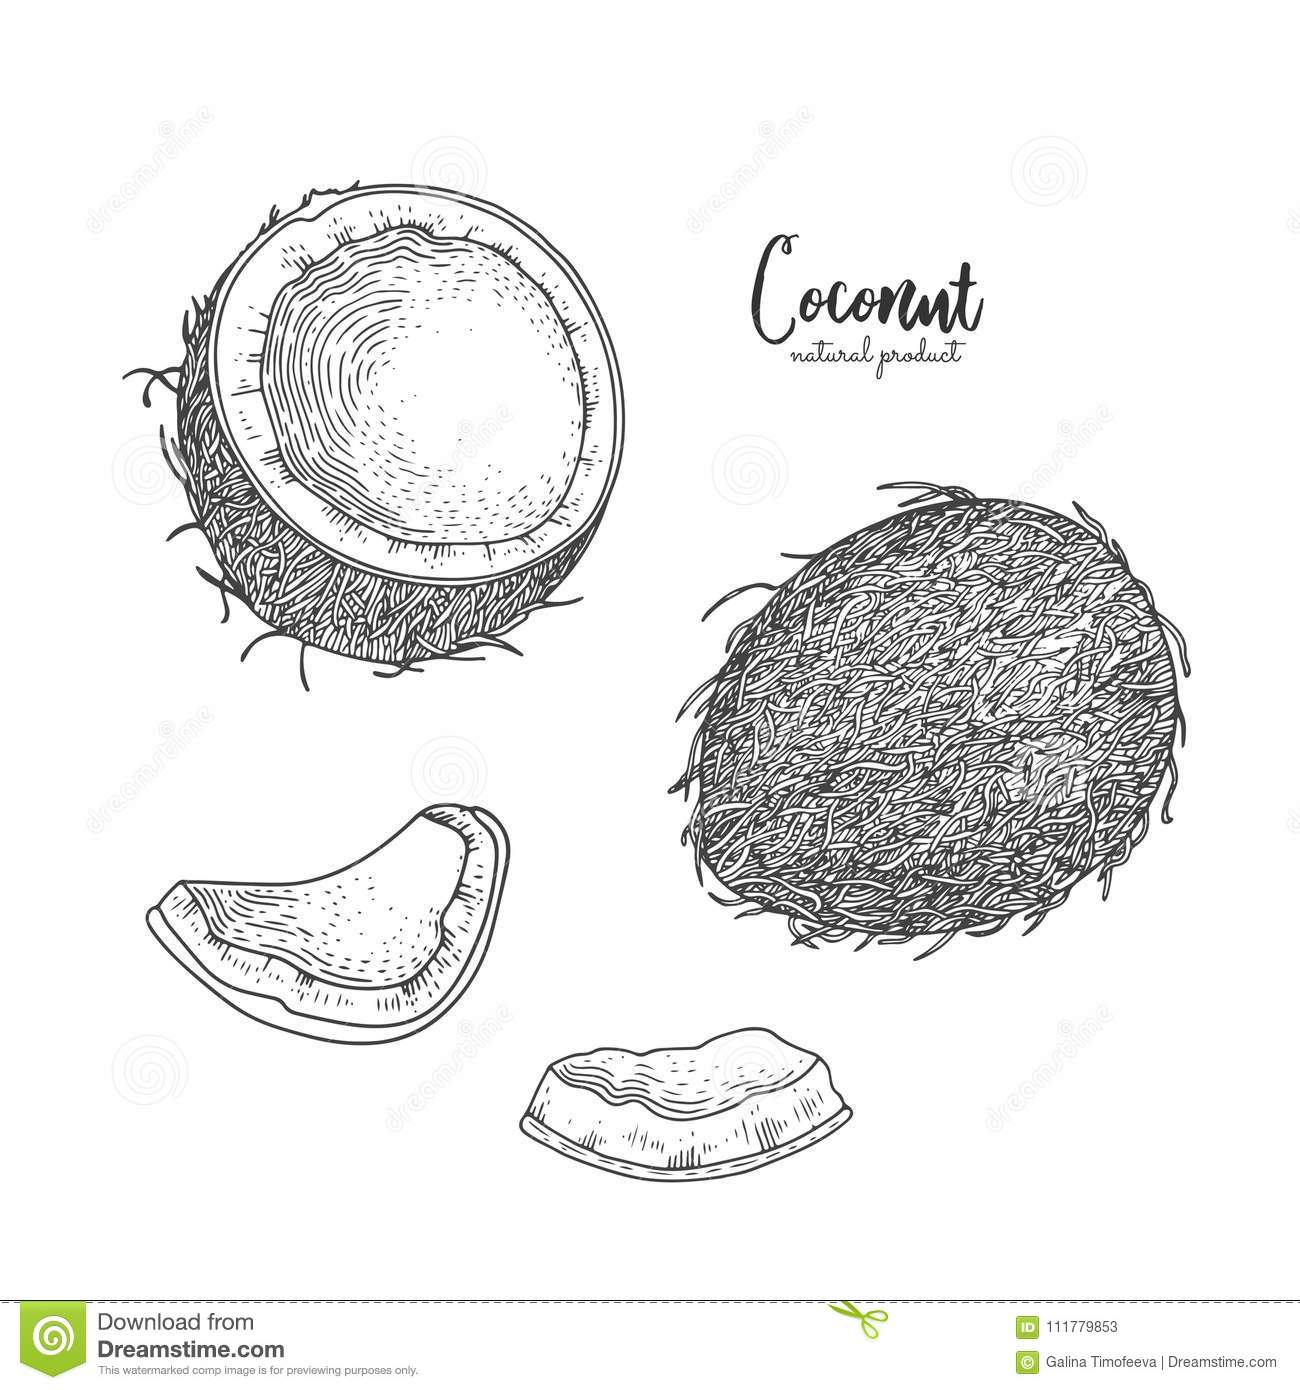 Hand drawn illustration of coconut isolated on white background. Engraved art. Tropical vegetarian objects. Use for